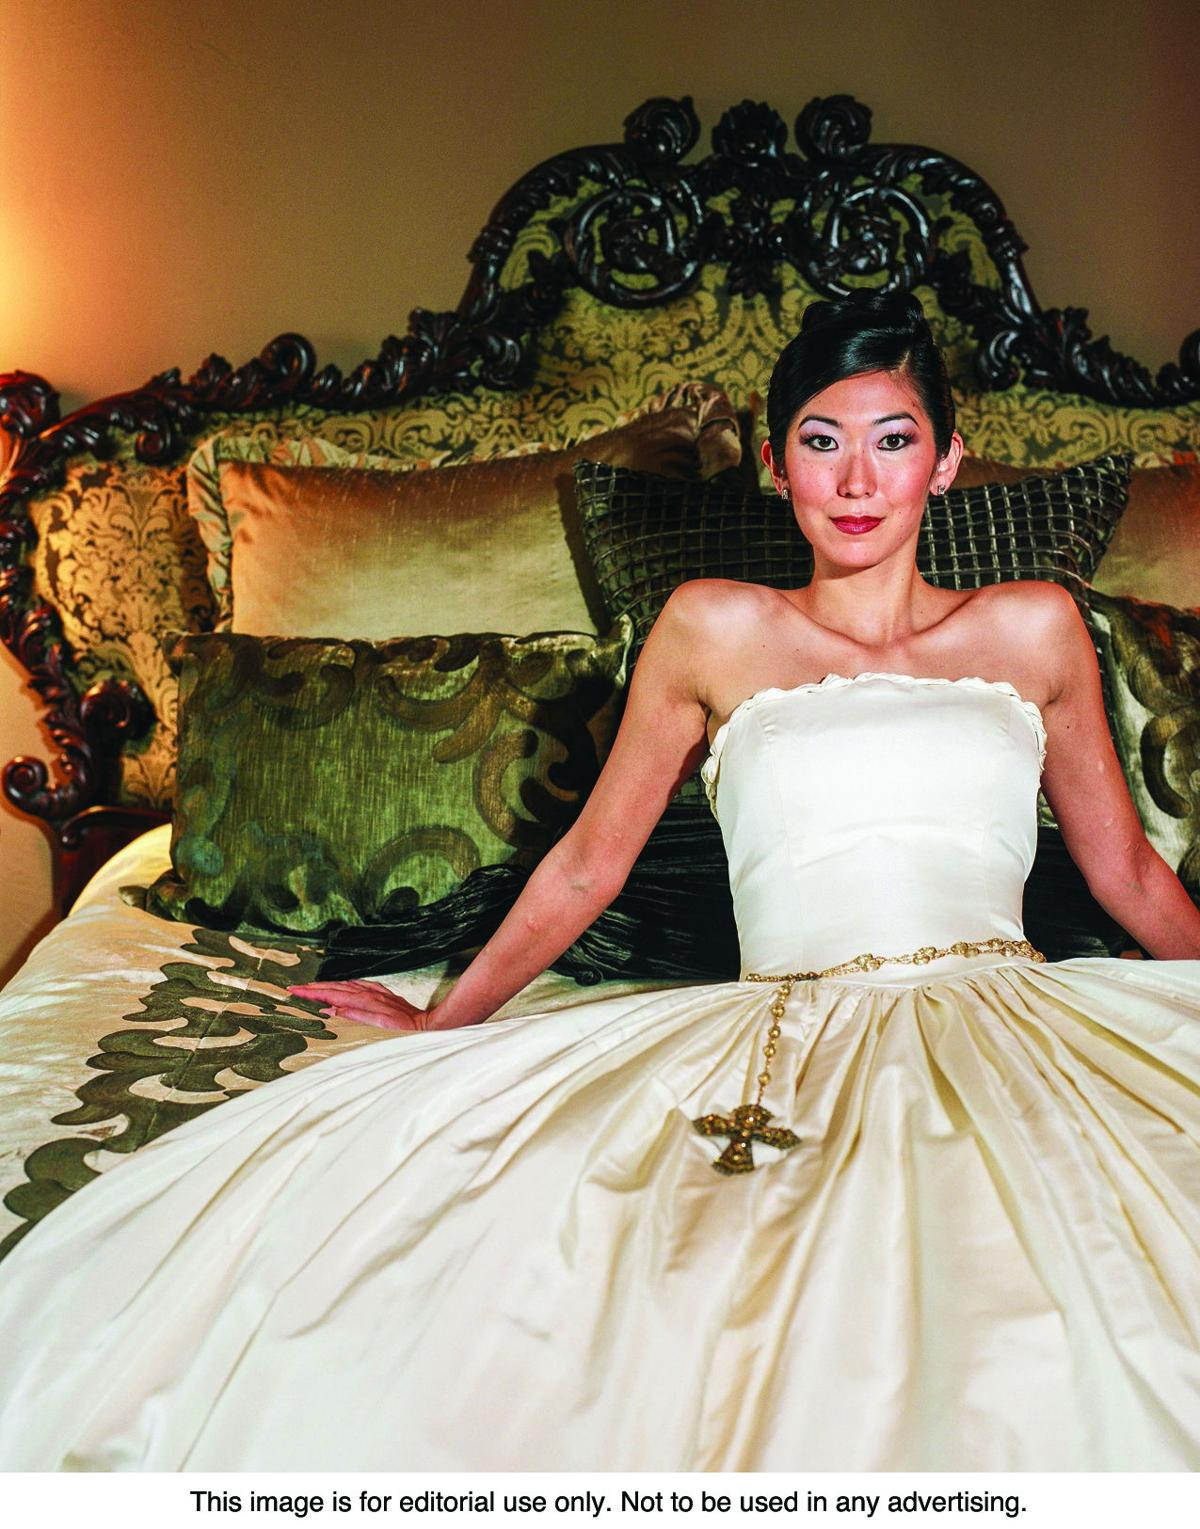 Repurpose, recycle your wedding gown | Living | thepress.net